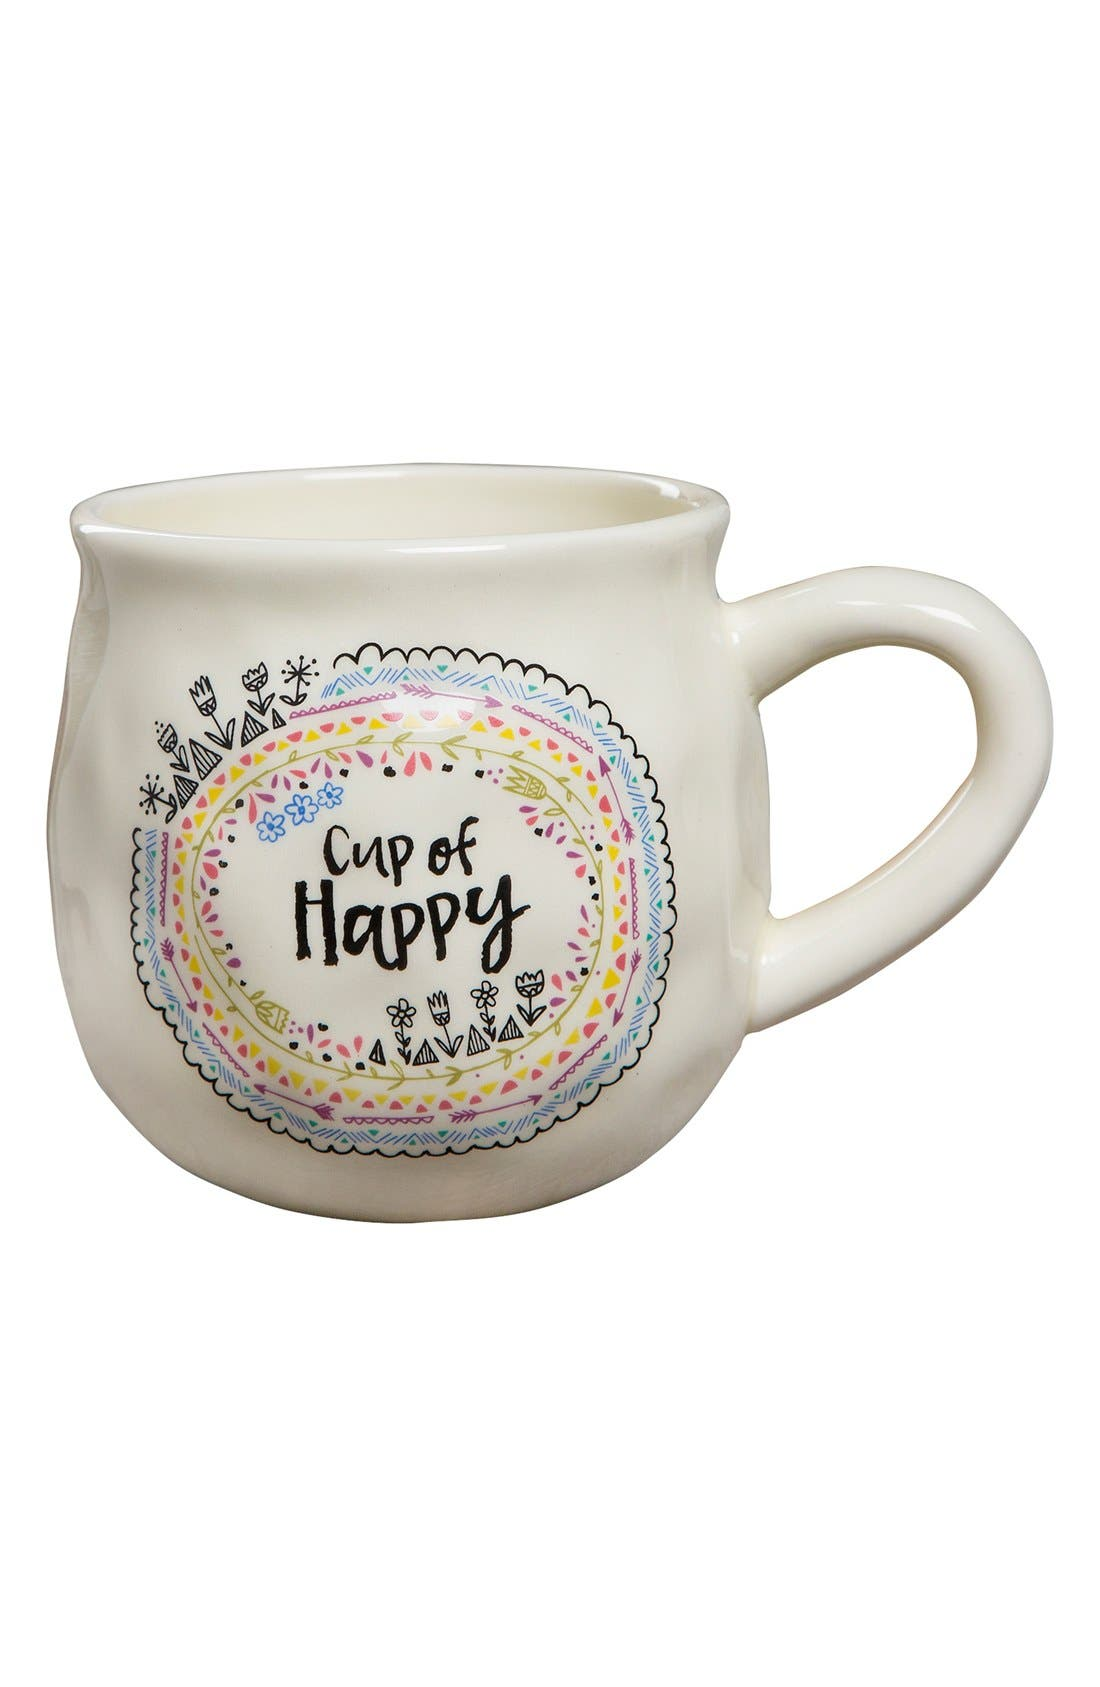 Alternate Image 1 Selected - Natural Life 'Cup of Happy' Ceramic Coffee Mug